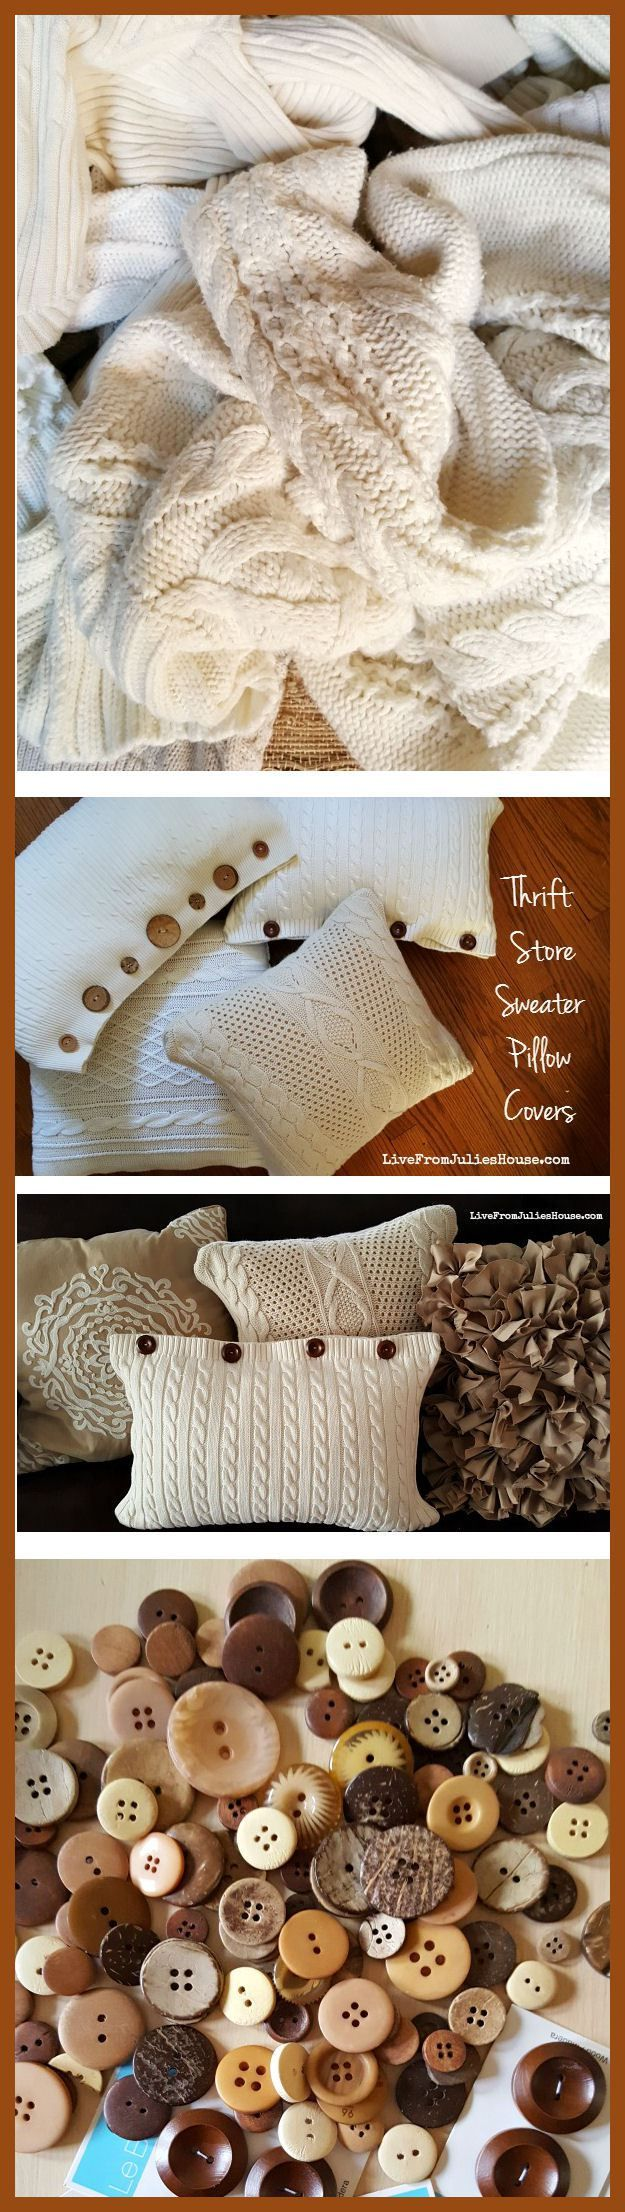 Decorative Pillow Covers | Pillow Slipcovers | Ikea Throw Pillows